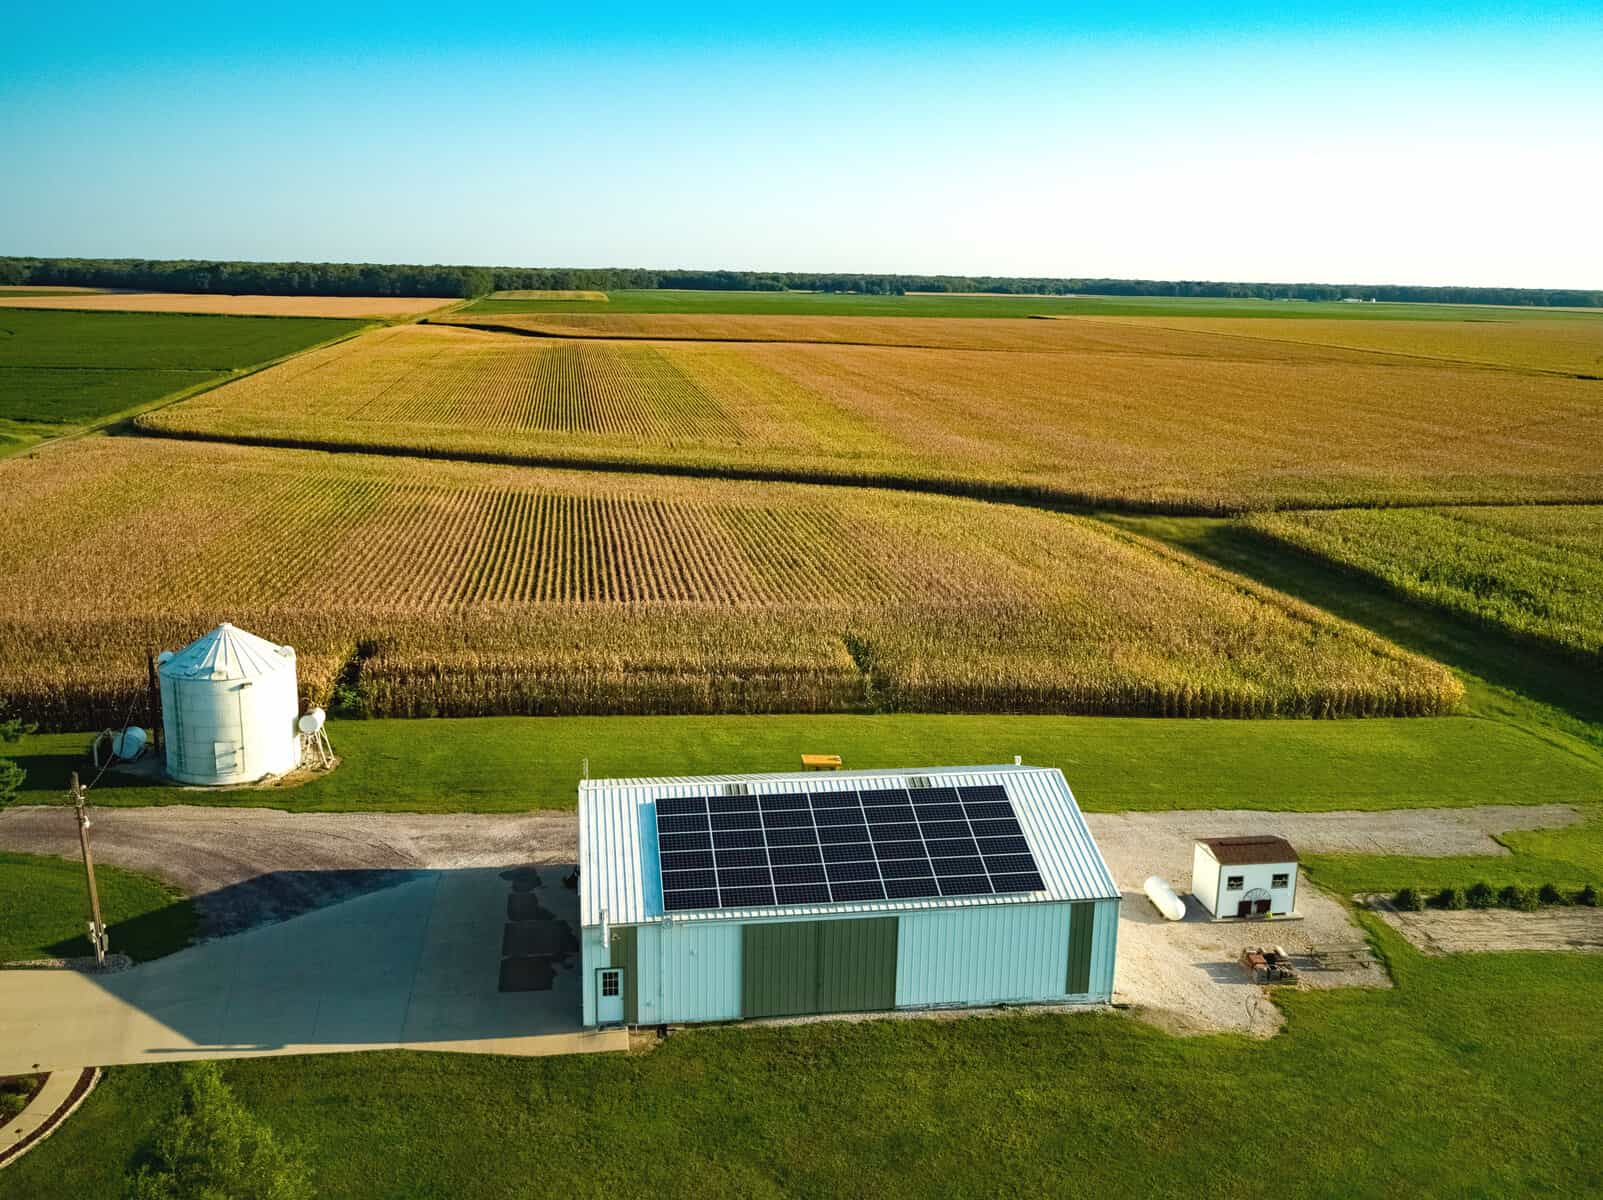 The Application of Solar Power in Agriculture